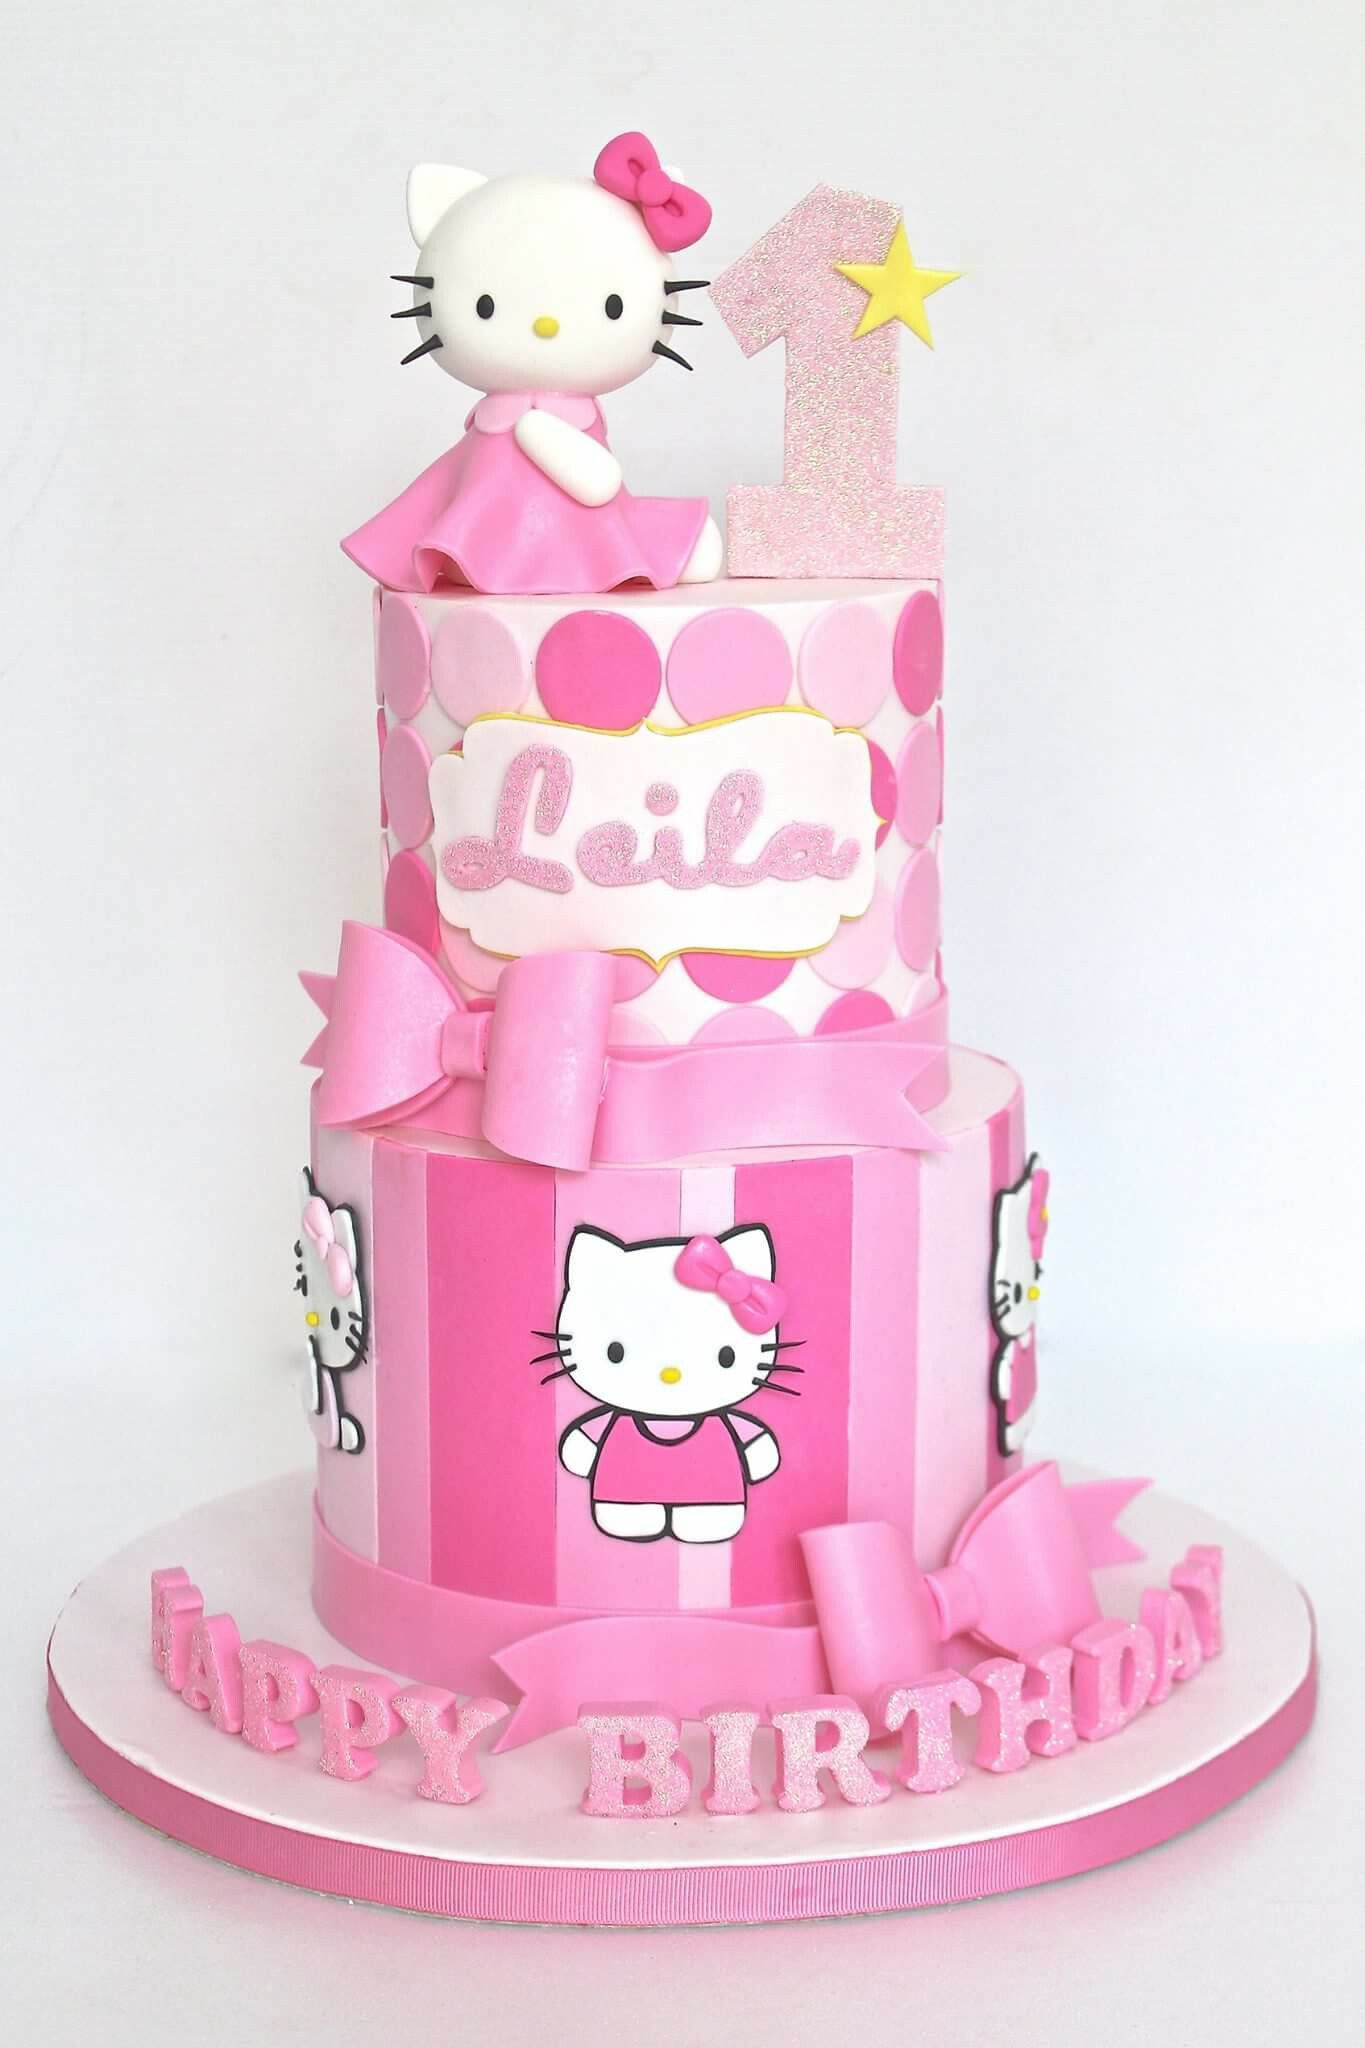 Outstanding Pin By Lizabelle Uy On Laras First Birthday Hello Kitty Theme Funny Birthday Cards Online Inifodamsfinfo